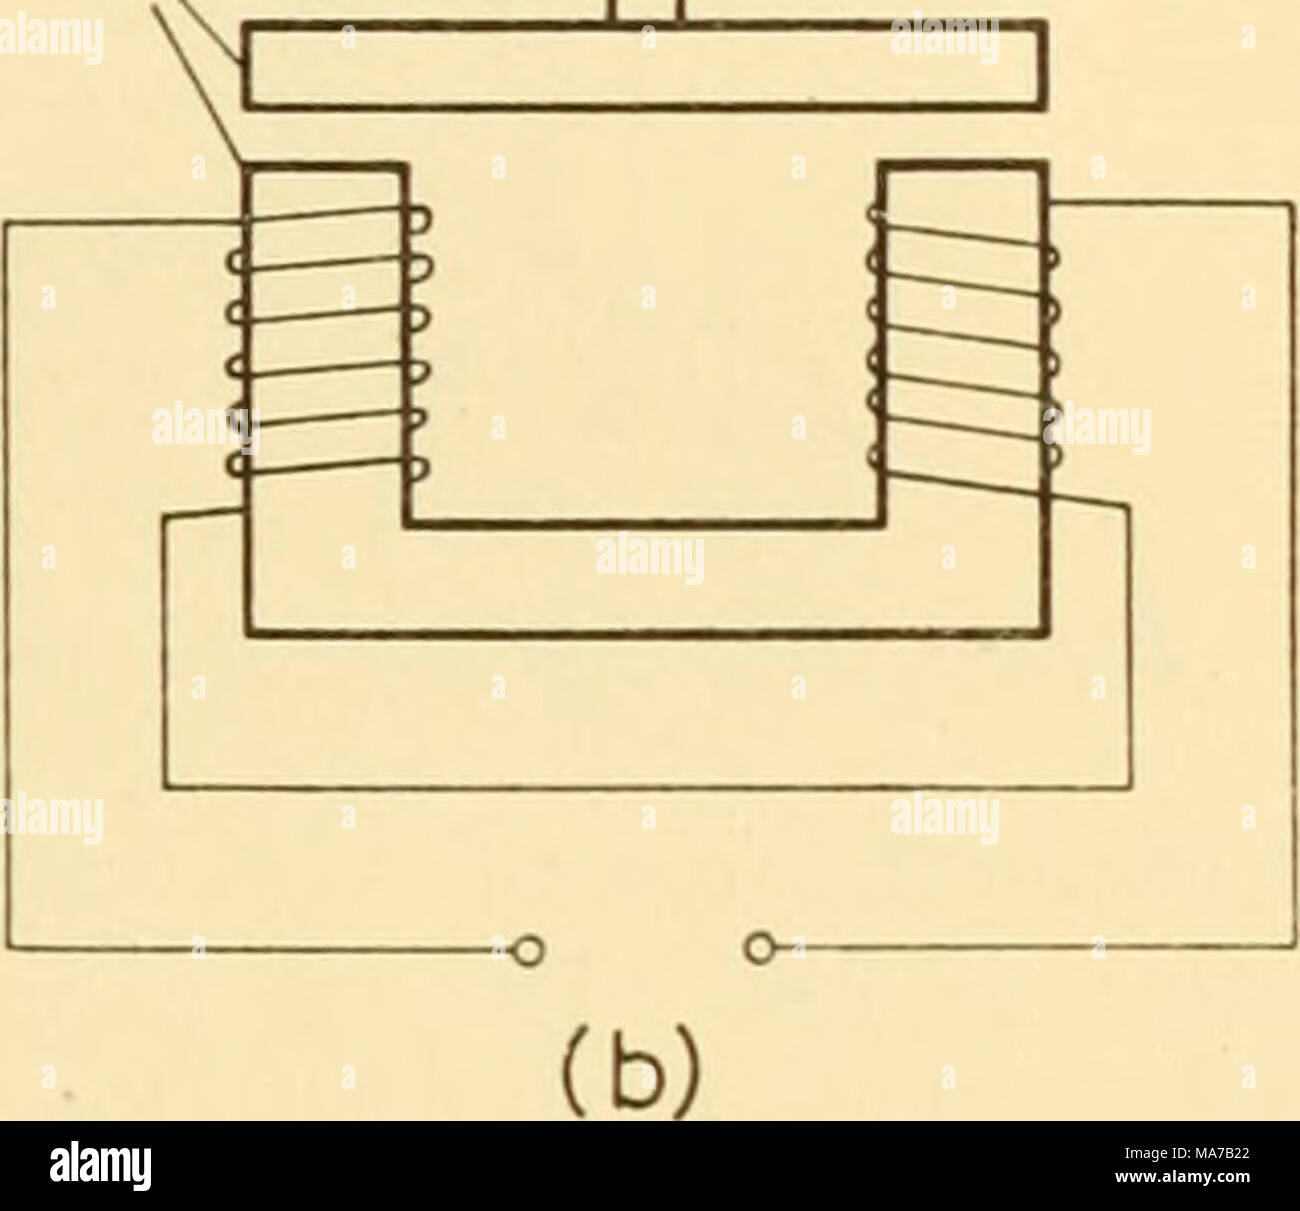 hight resolution of electronic apparatus for biological research figure 33 23 elementary moving iron transducers